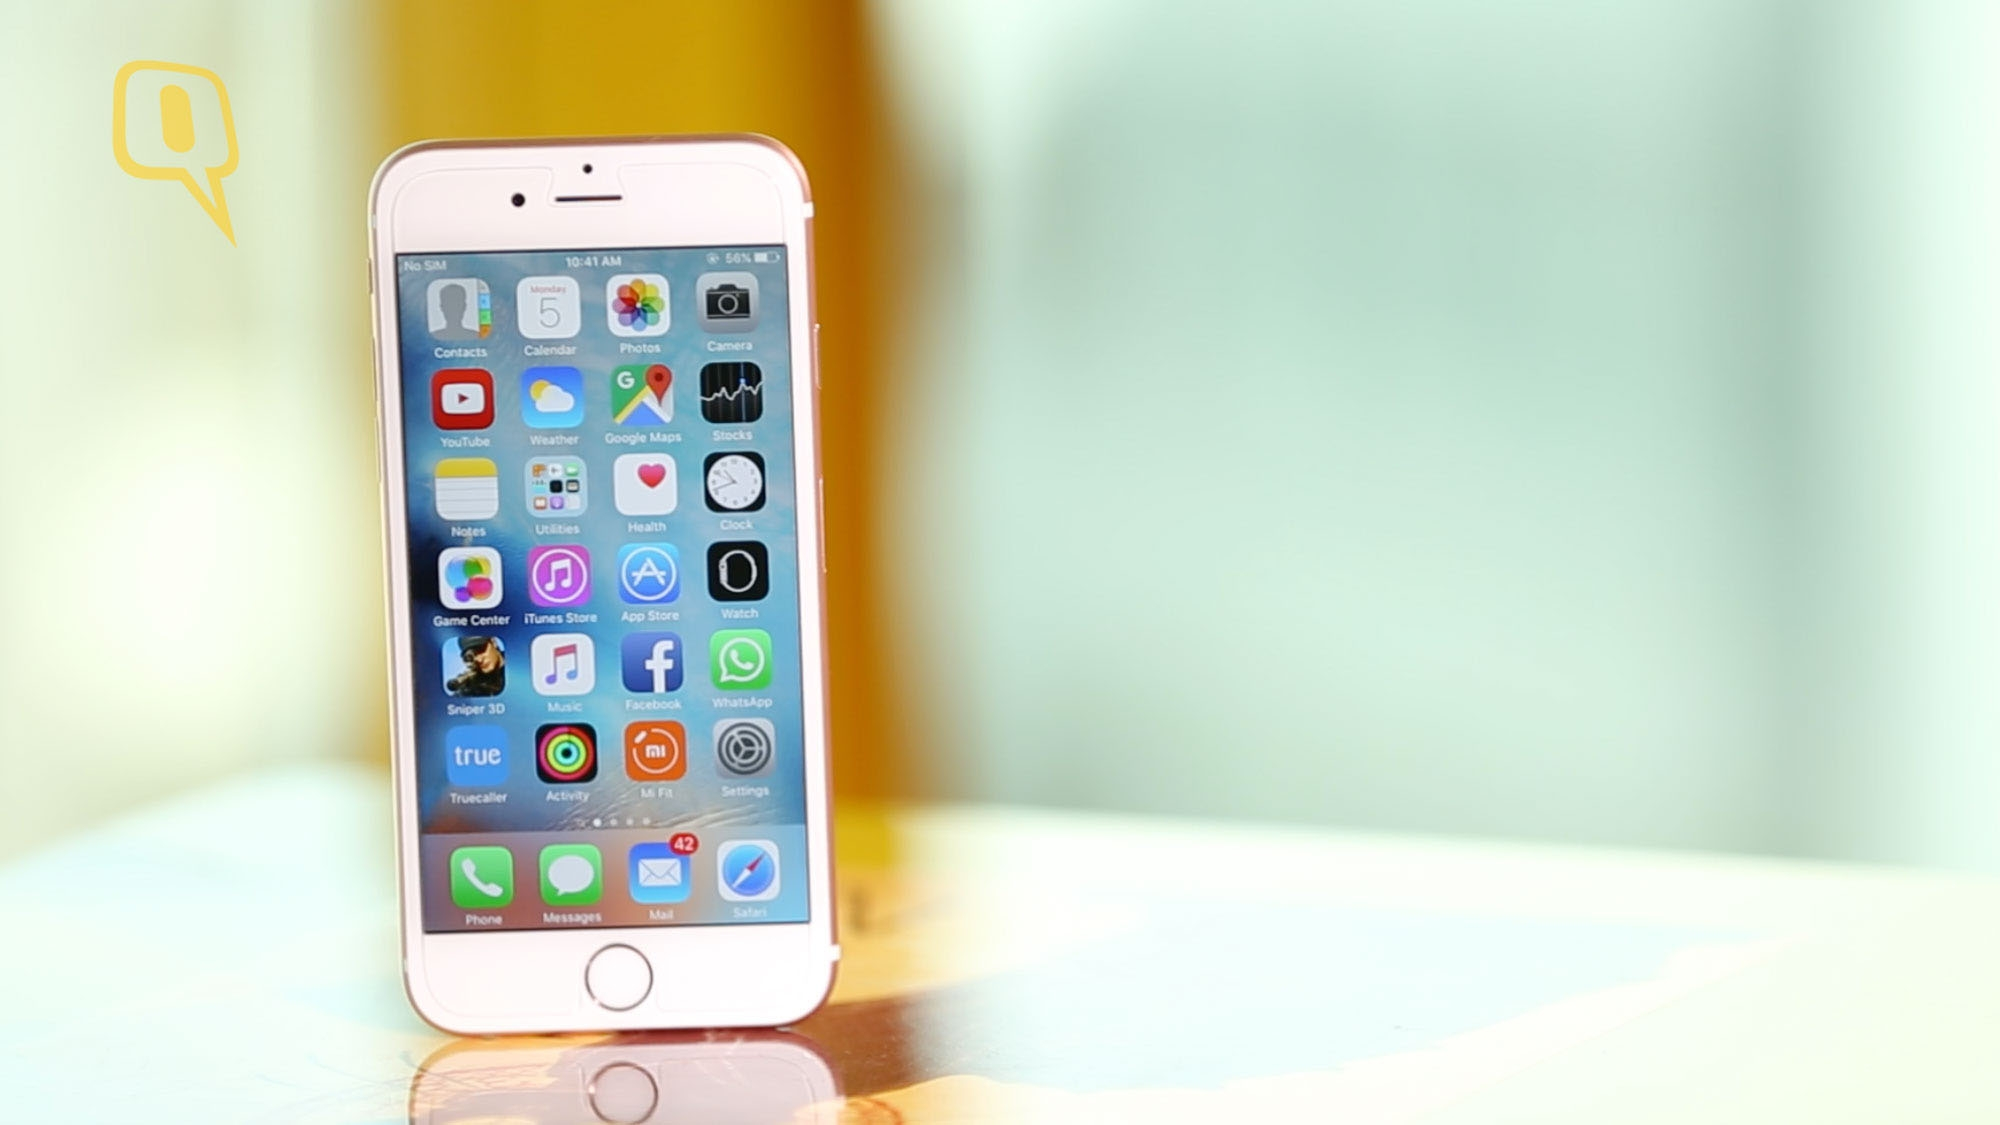 Apple Won't Update iPhone 5S, 6 & SE Models to iOS 13: Report